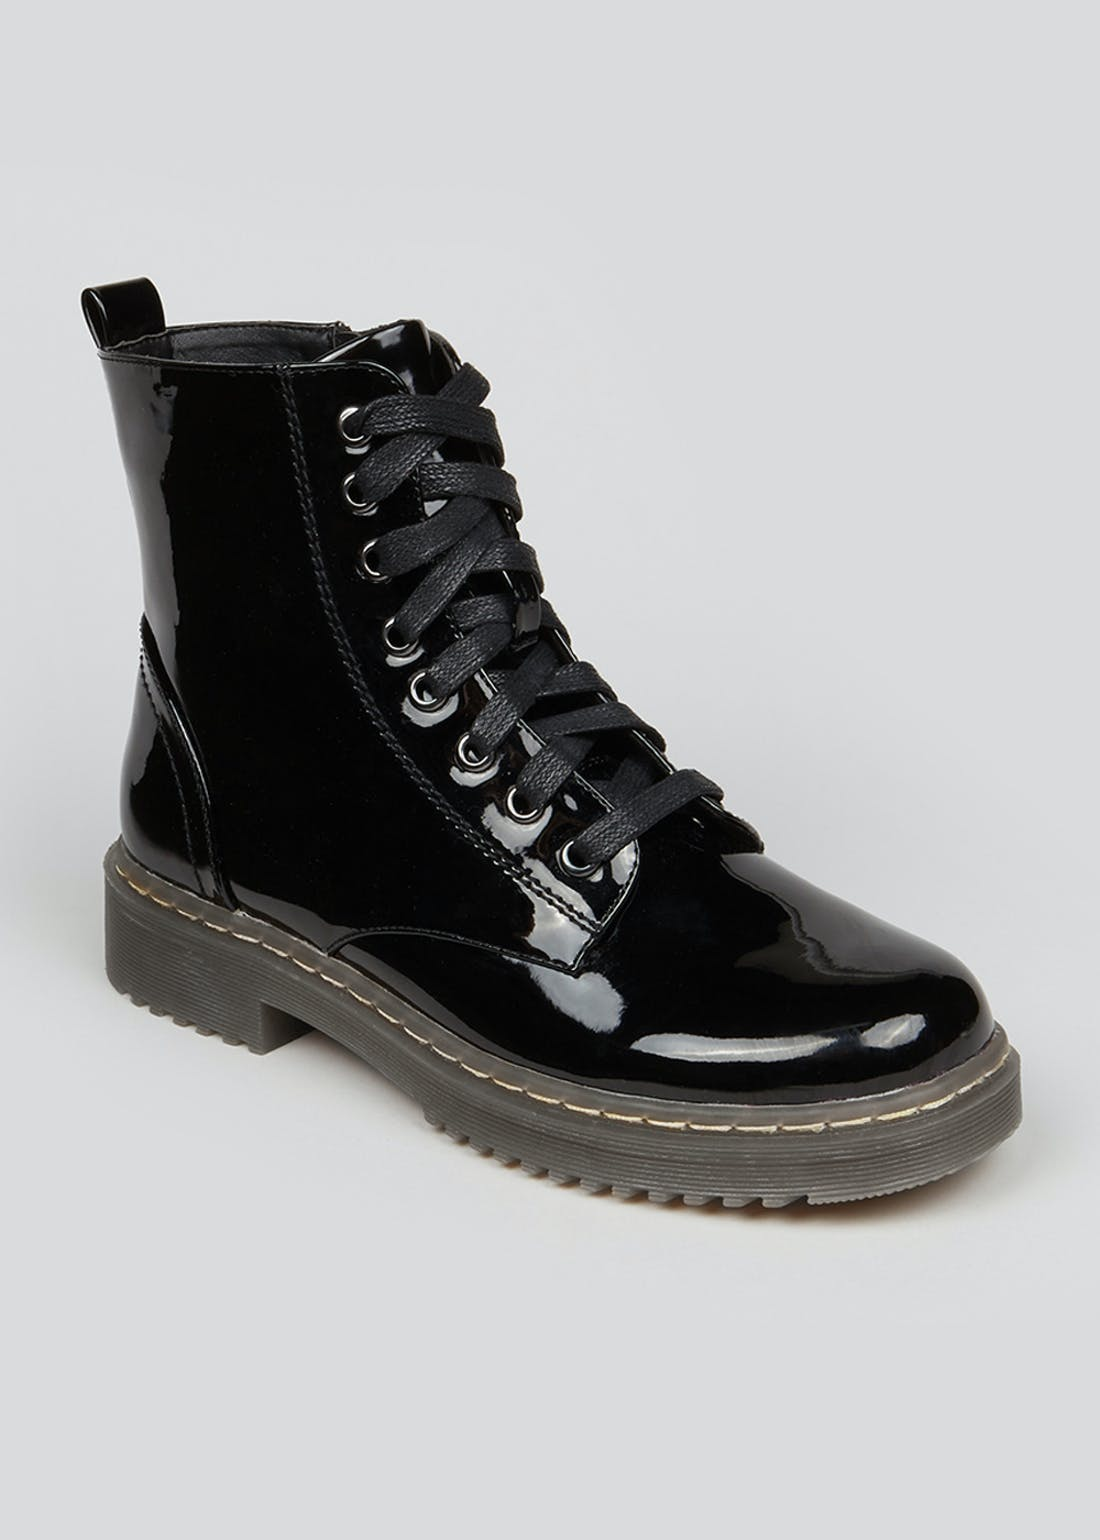 Black Patent Lace Up Worker Boots